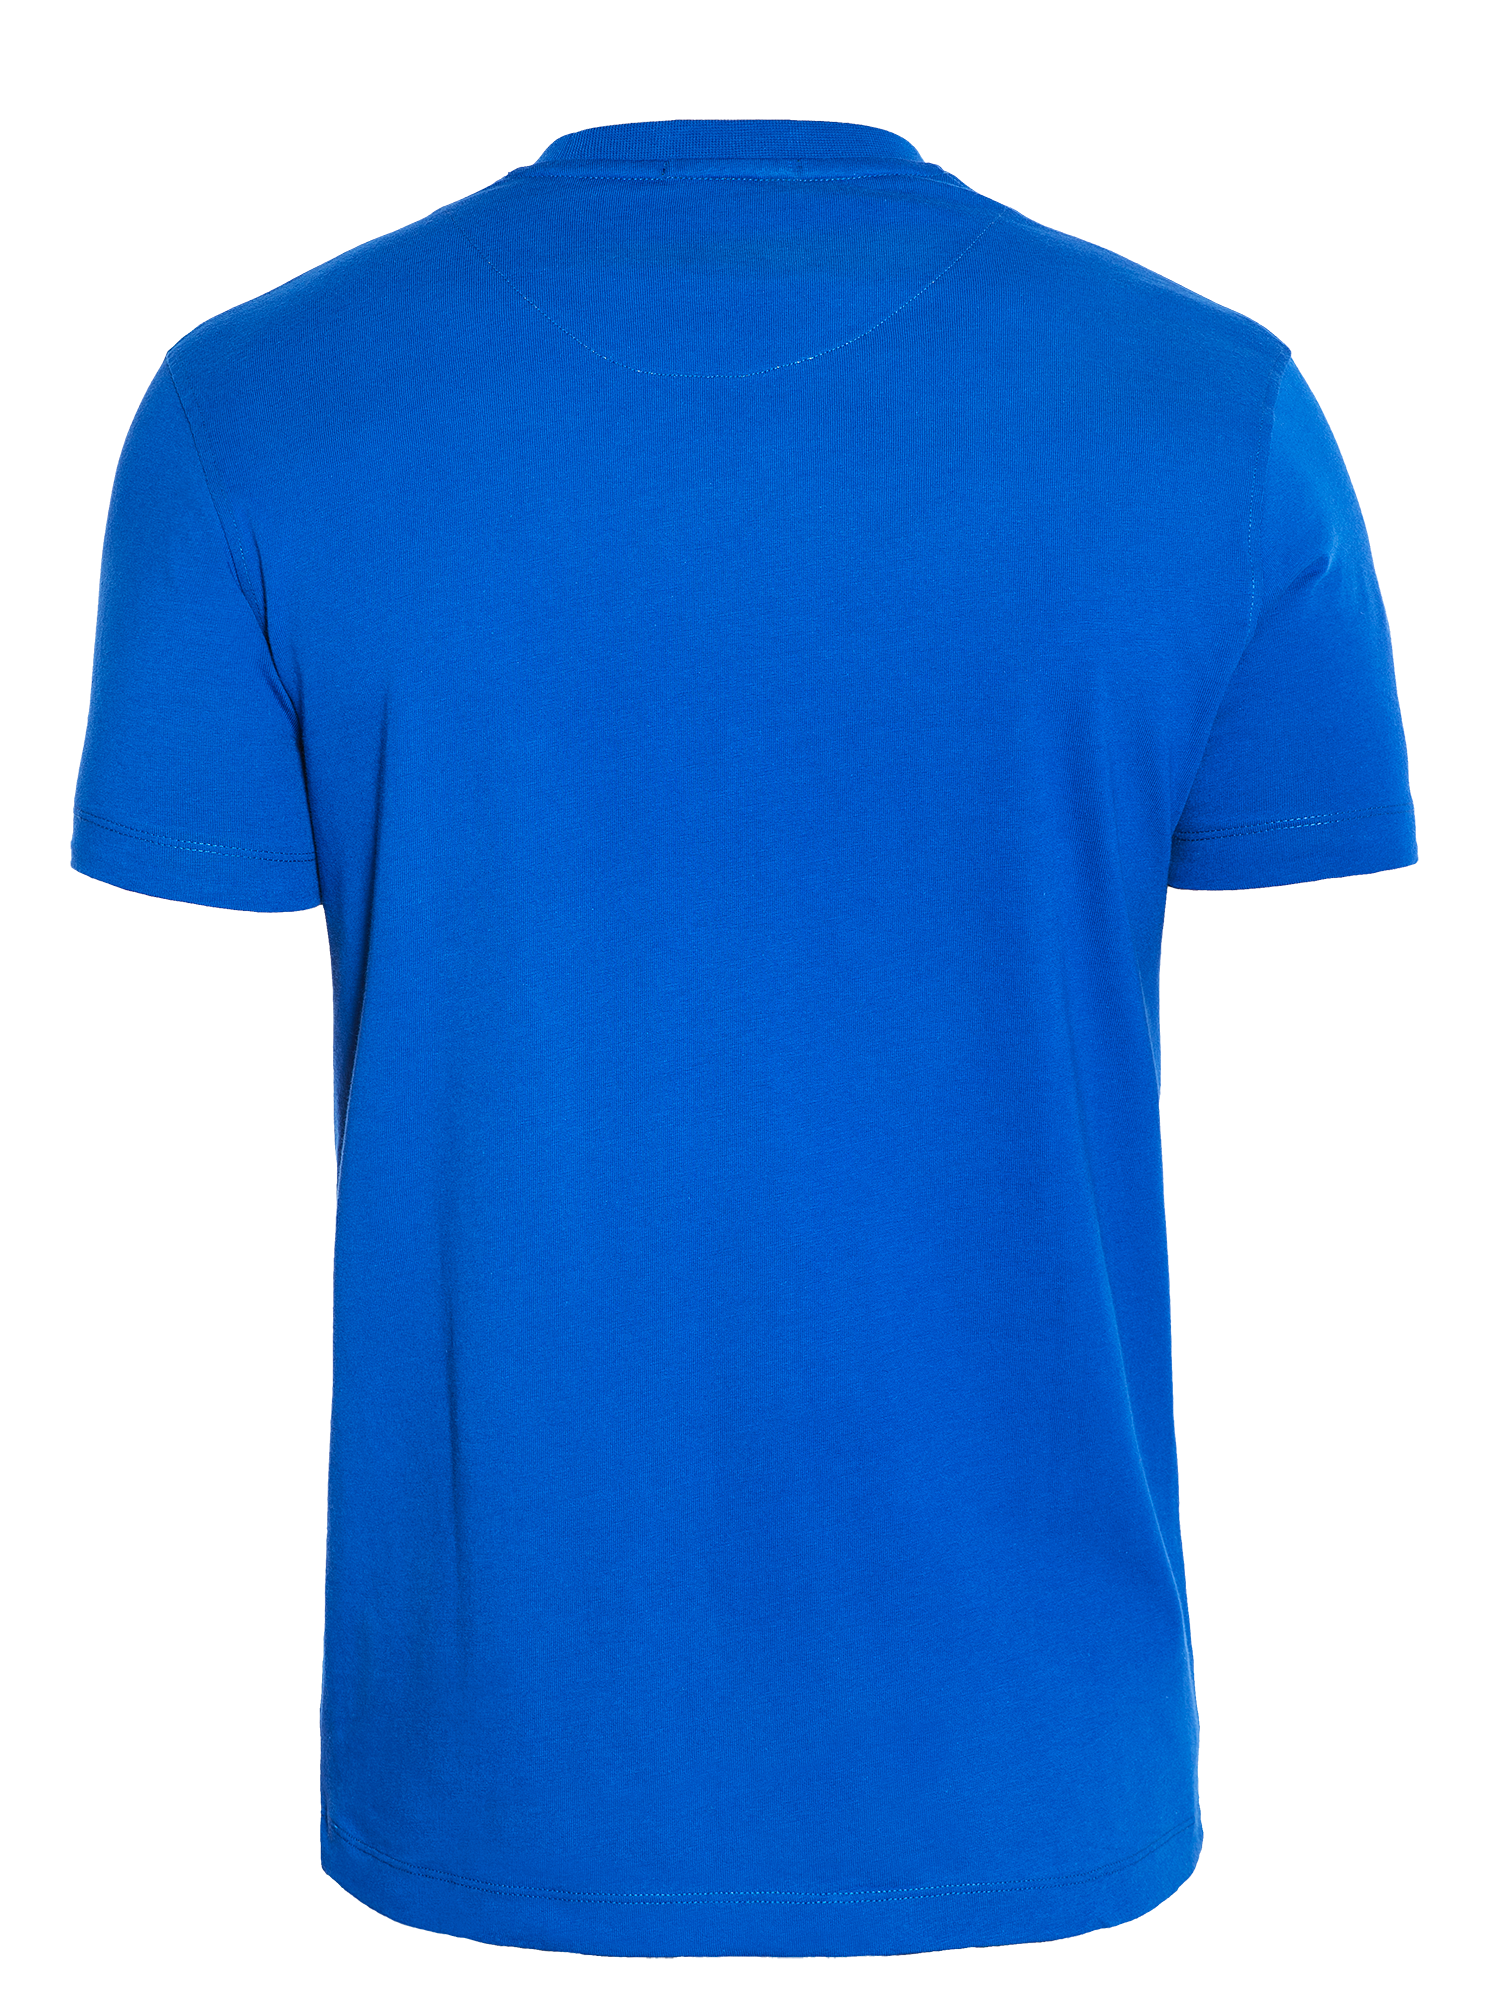 SOFT HAND-FEEL ROYAL BLUE T-SHIRT